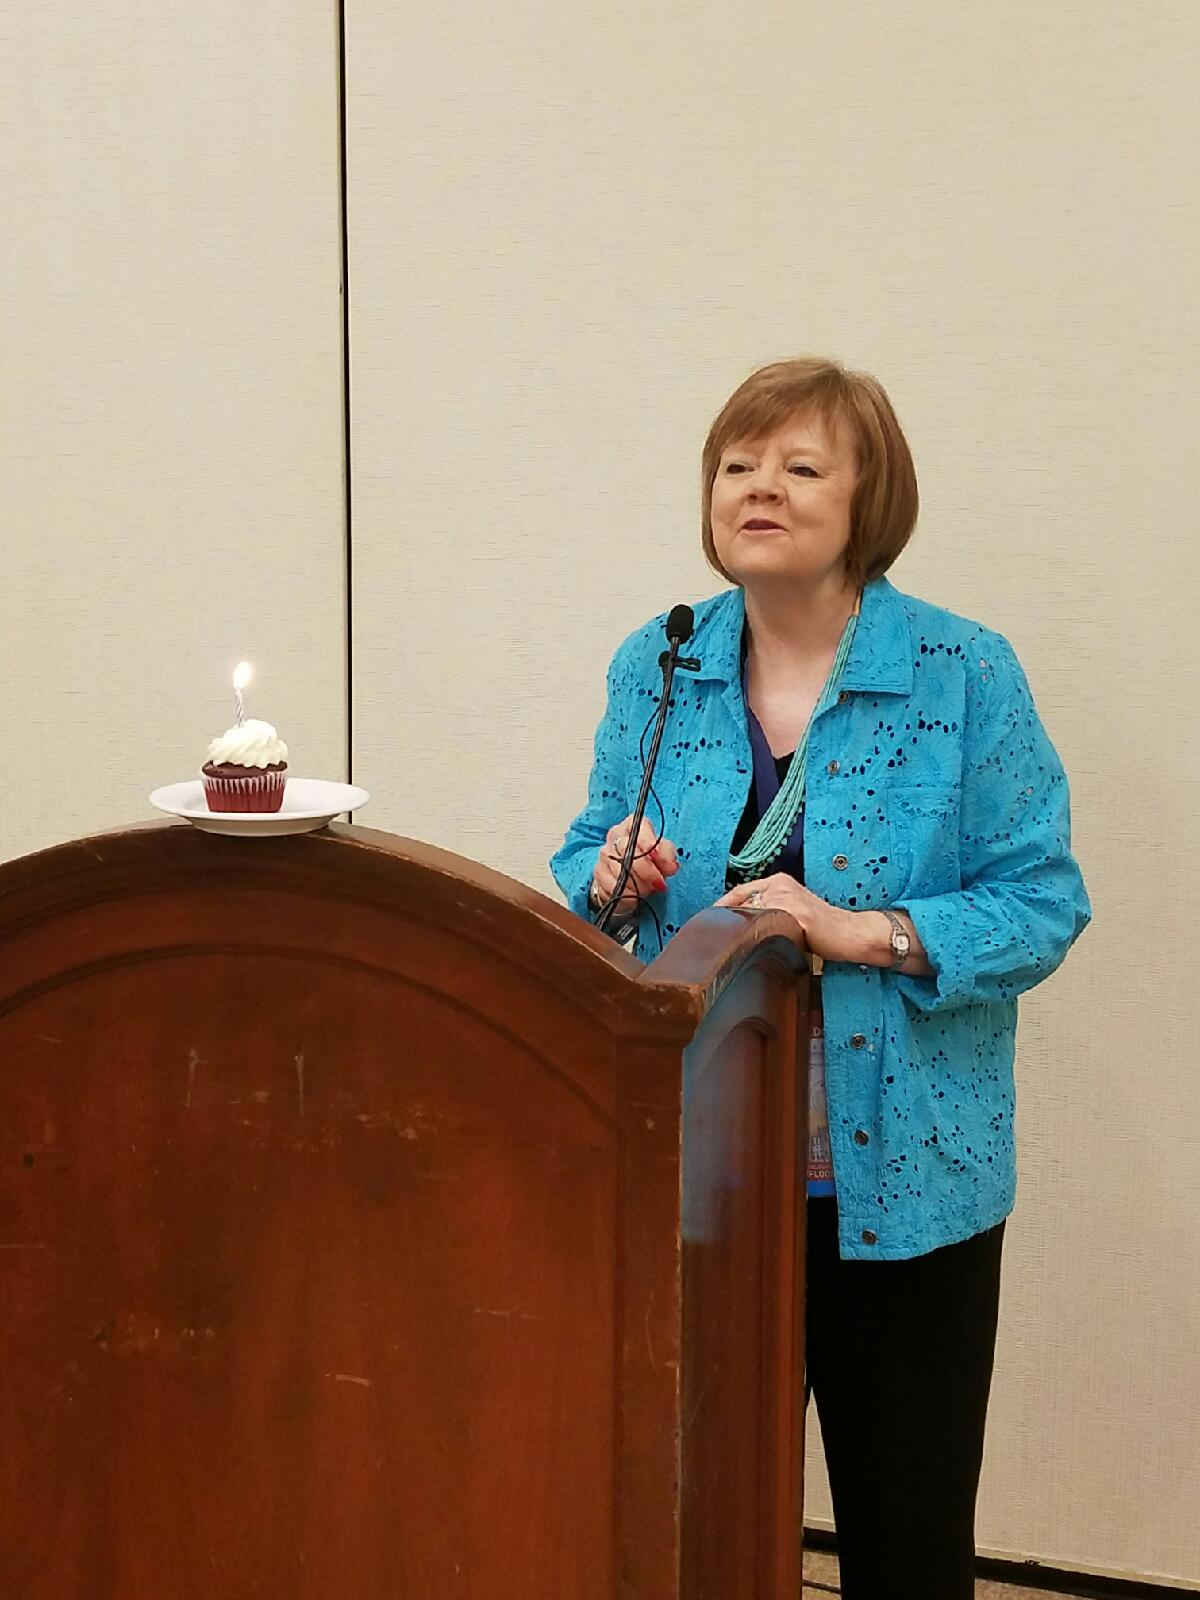 Colorado House Speaker Dickey Lee Hullinghorst is given a cupcake with a candle aflame in honor of her birthday today in Philadelphia at the Colorado delegation breakfast. (Photo by Pat Duncan/The Colorado Statesman).